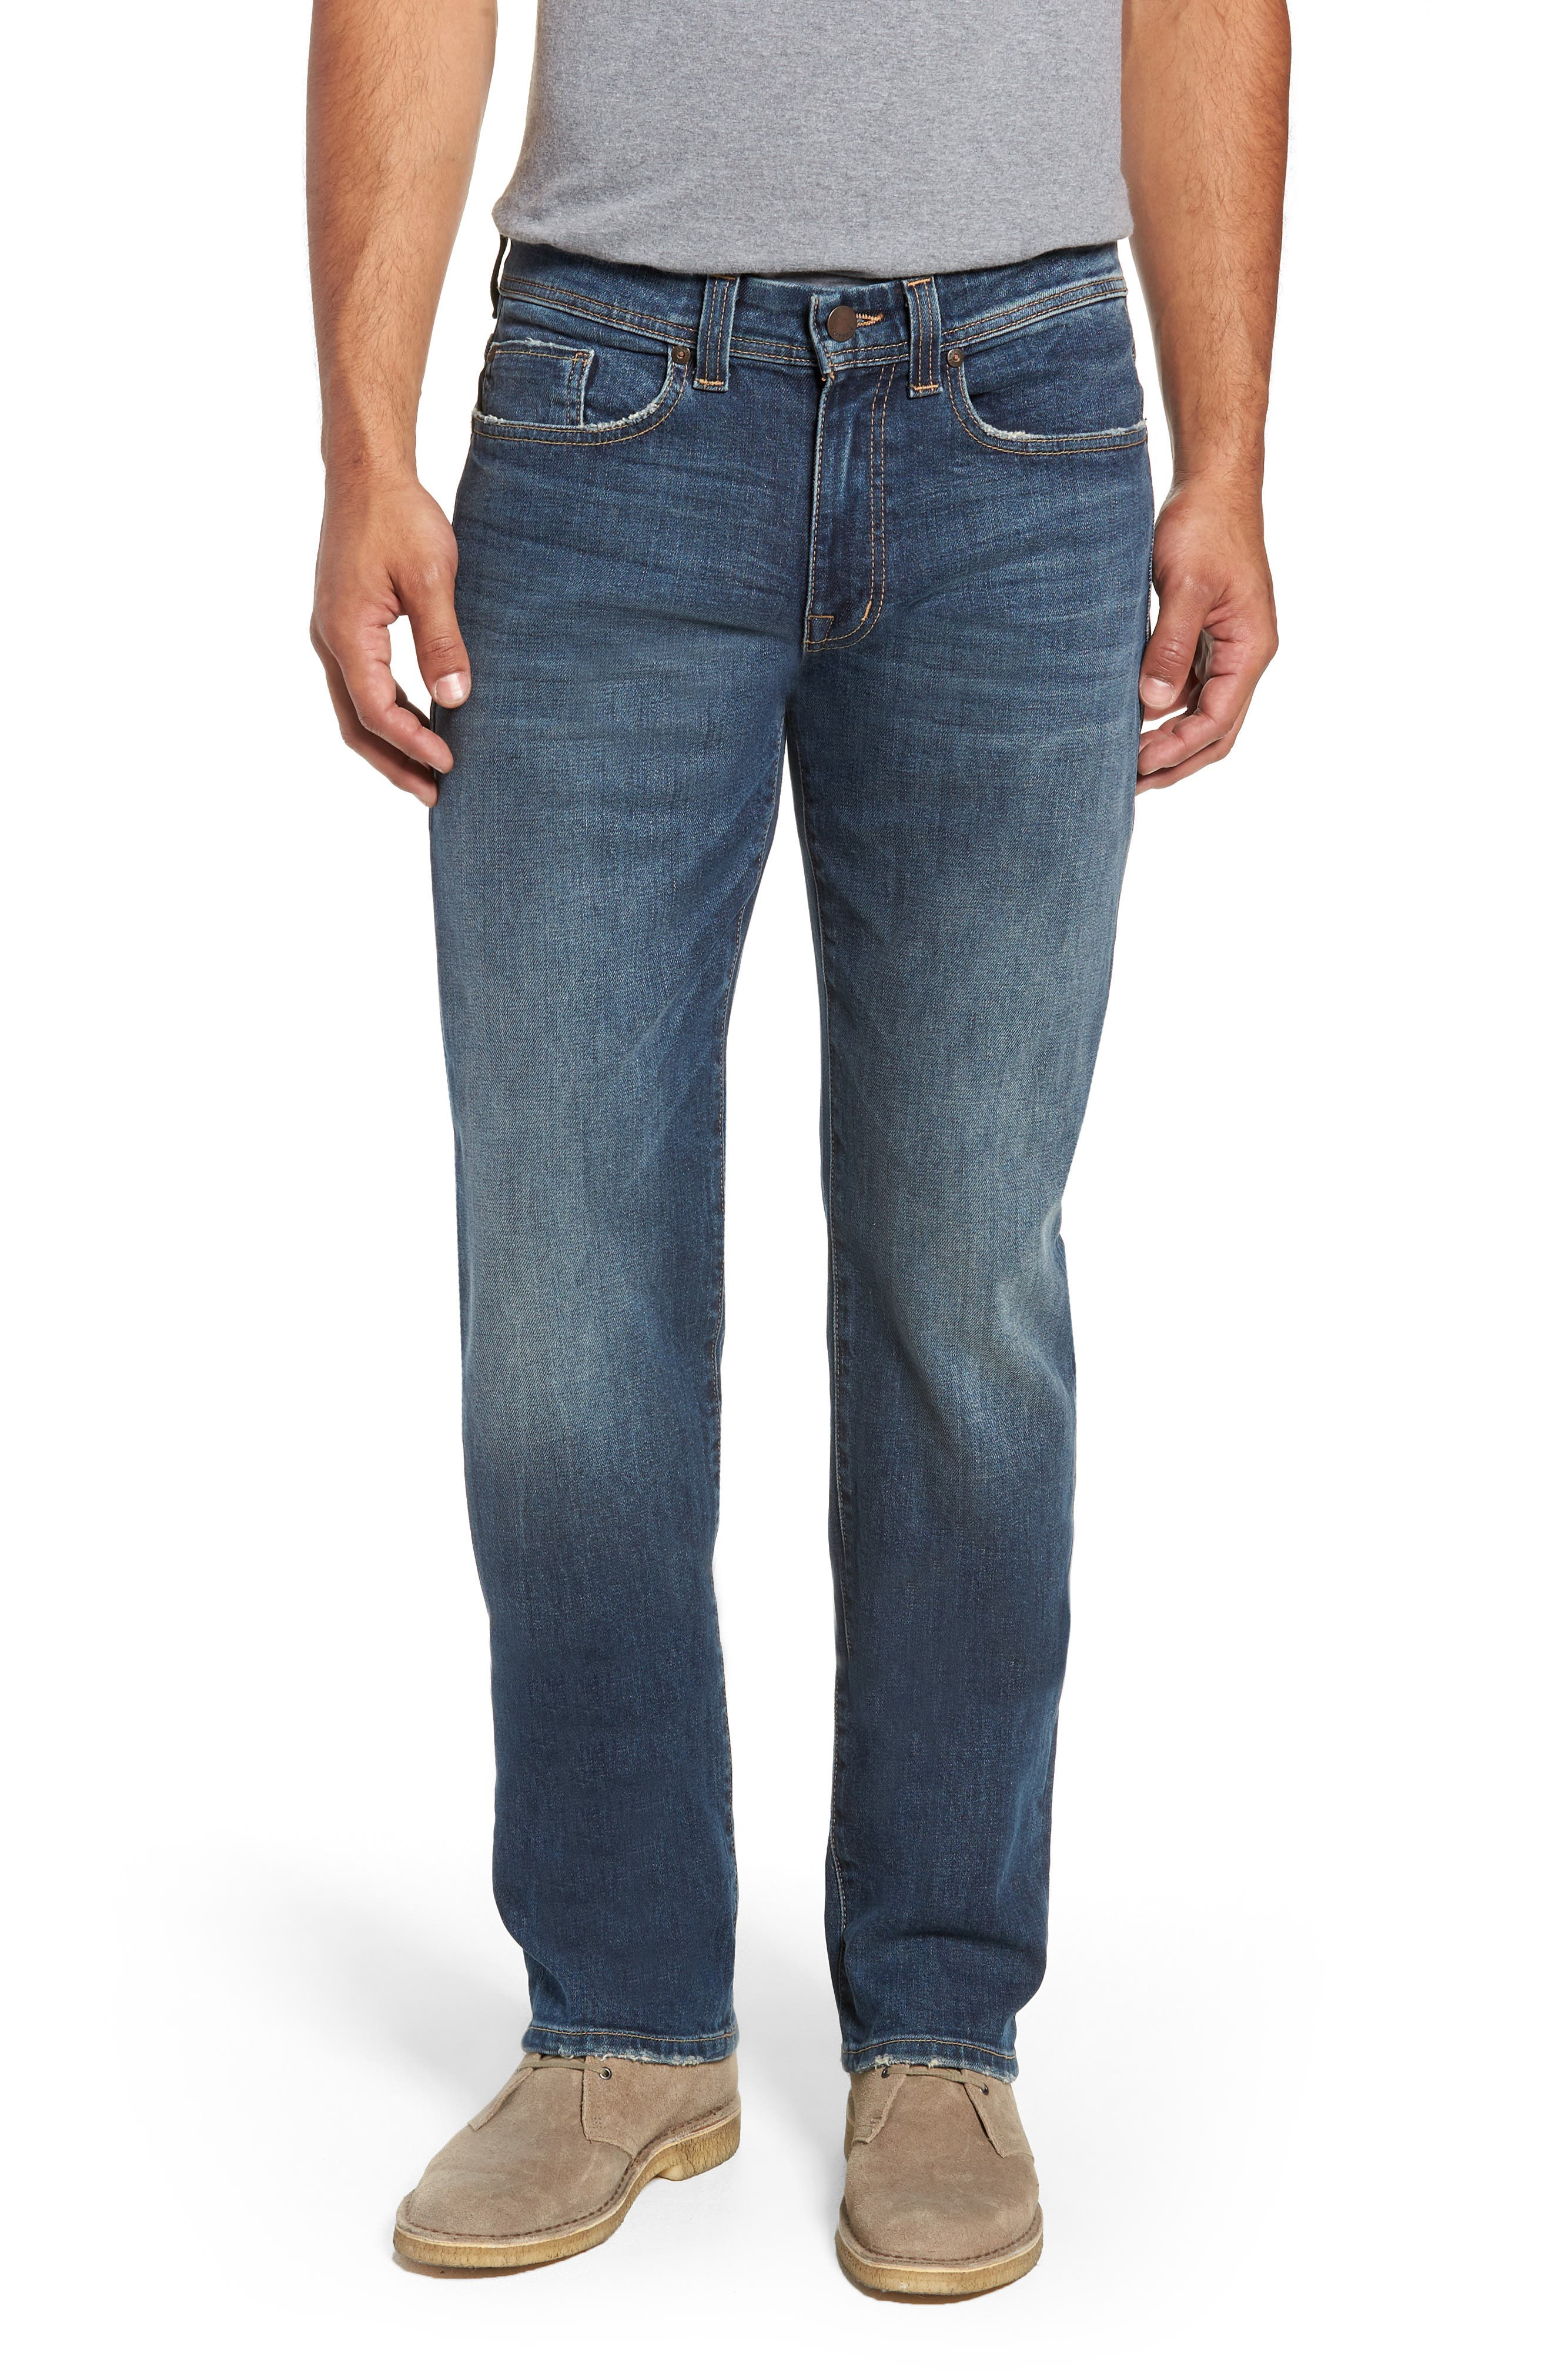 50-11 Relaxed Fit Jeans,                         Main,                         color, GTO VINTAGE